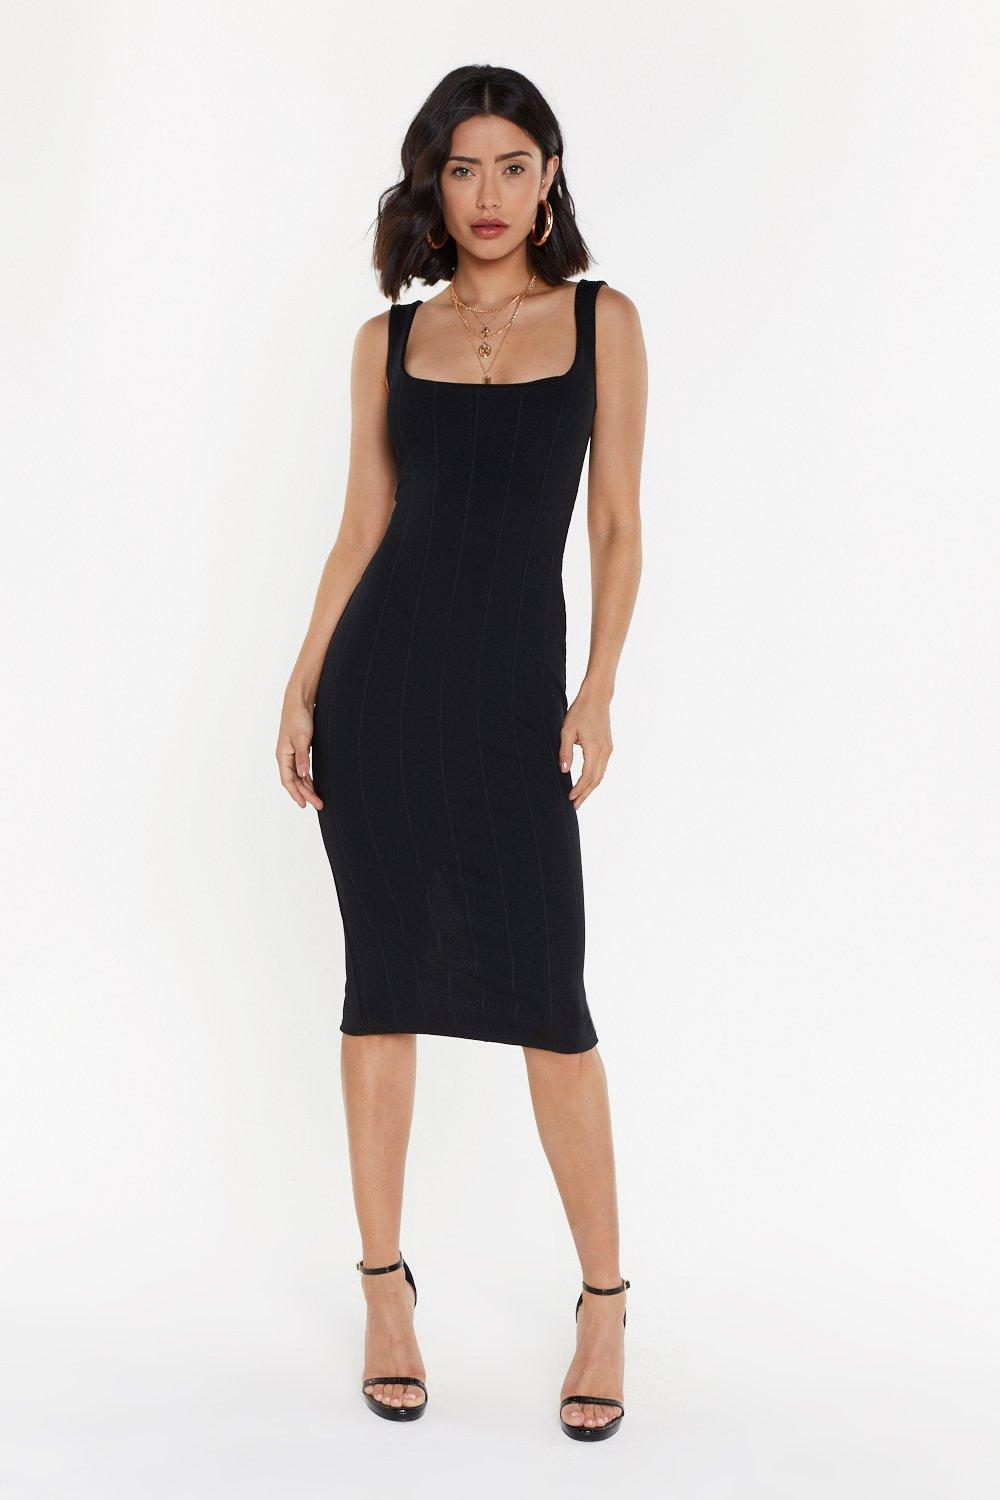 7262b37de18 Square Neck Bandage Midi Dress | Shop Clothes at Nasty Gal!